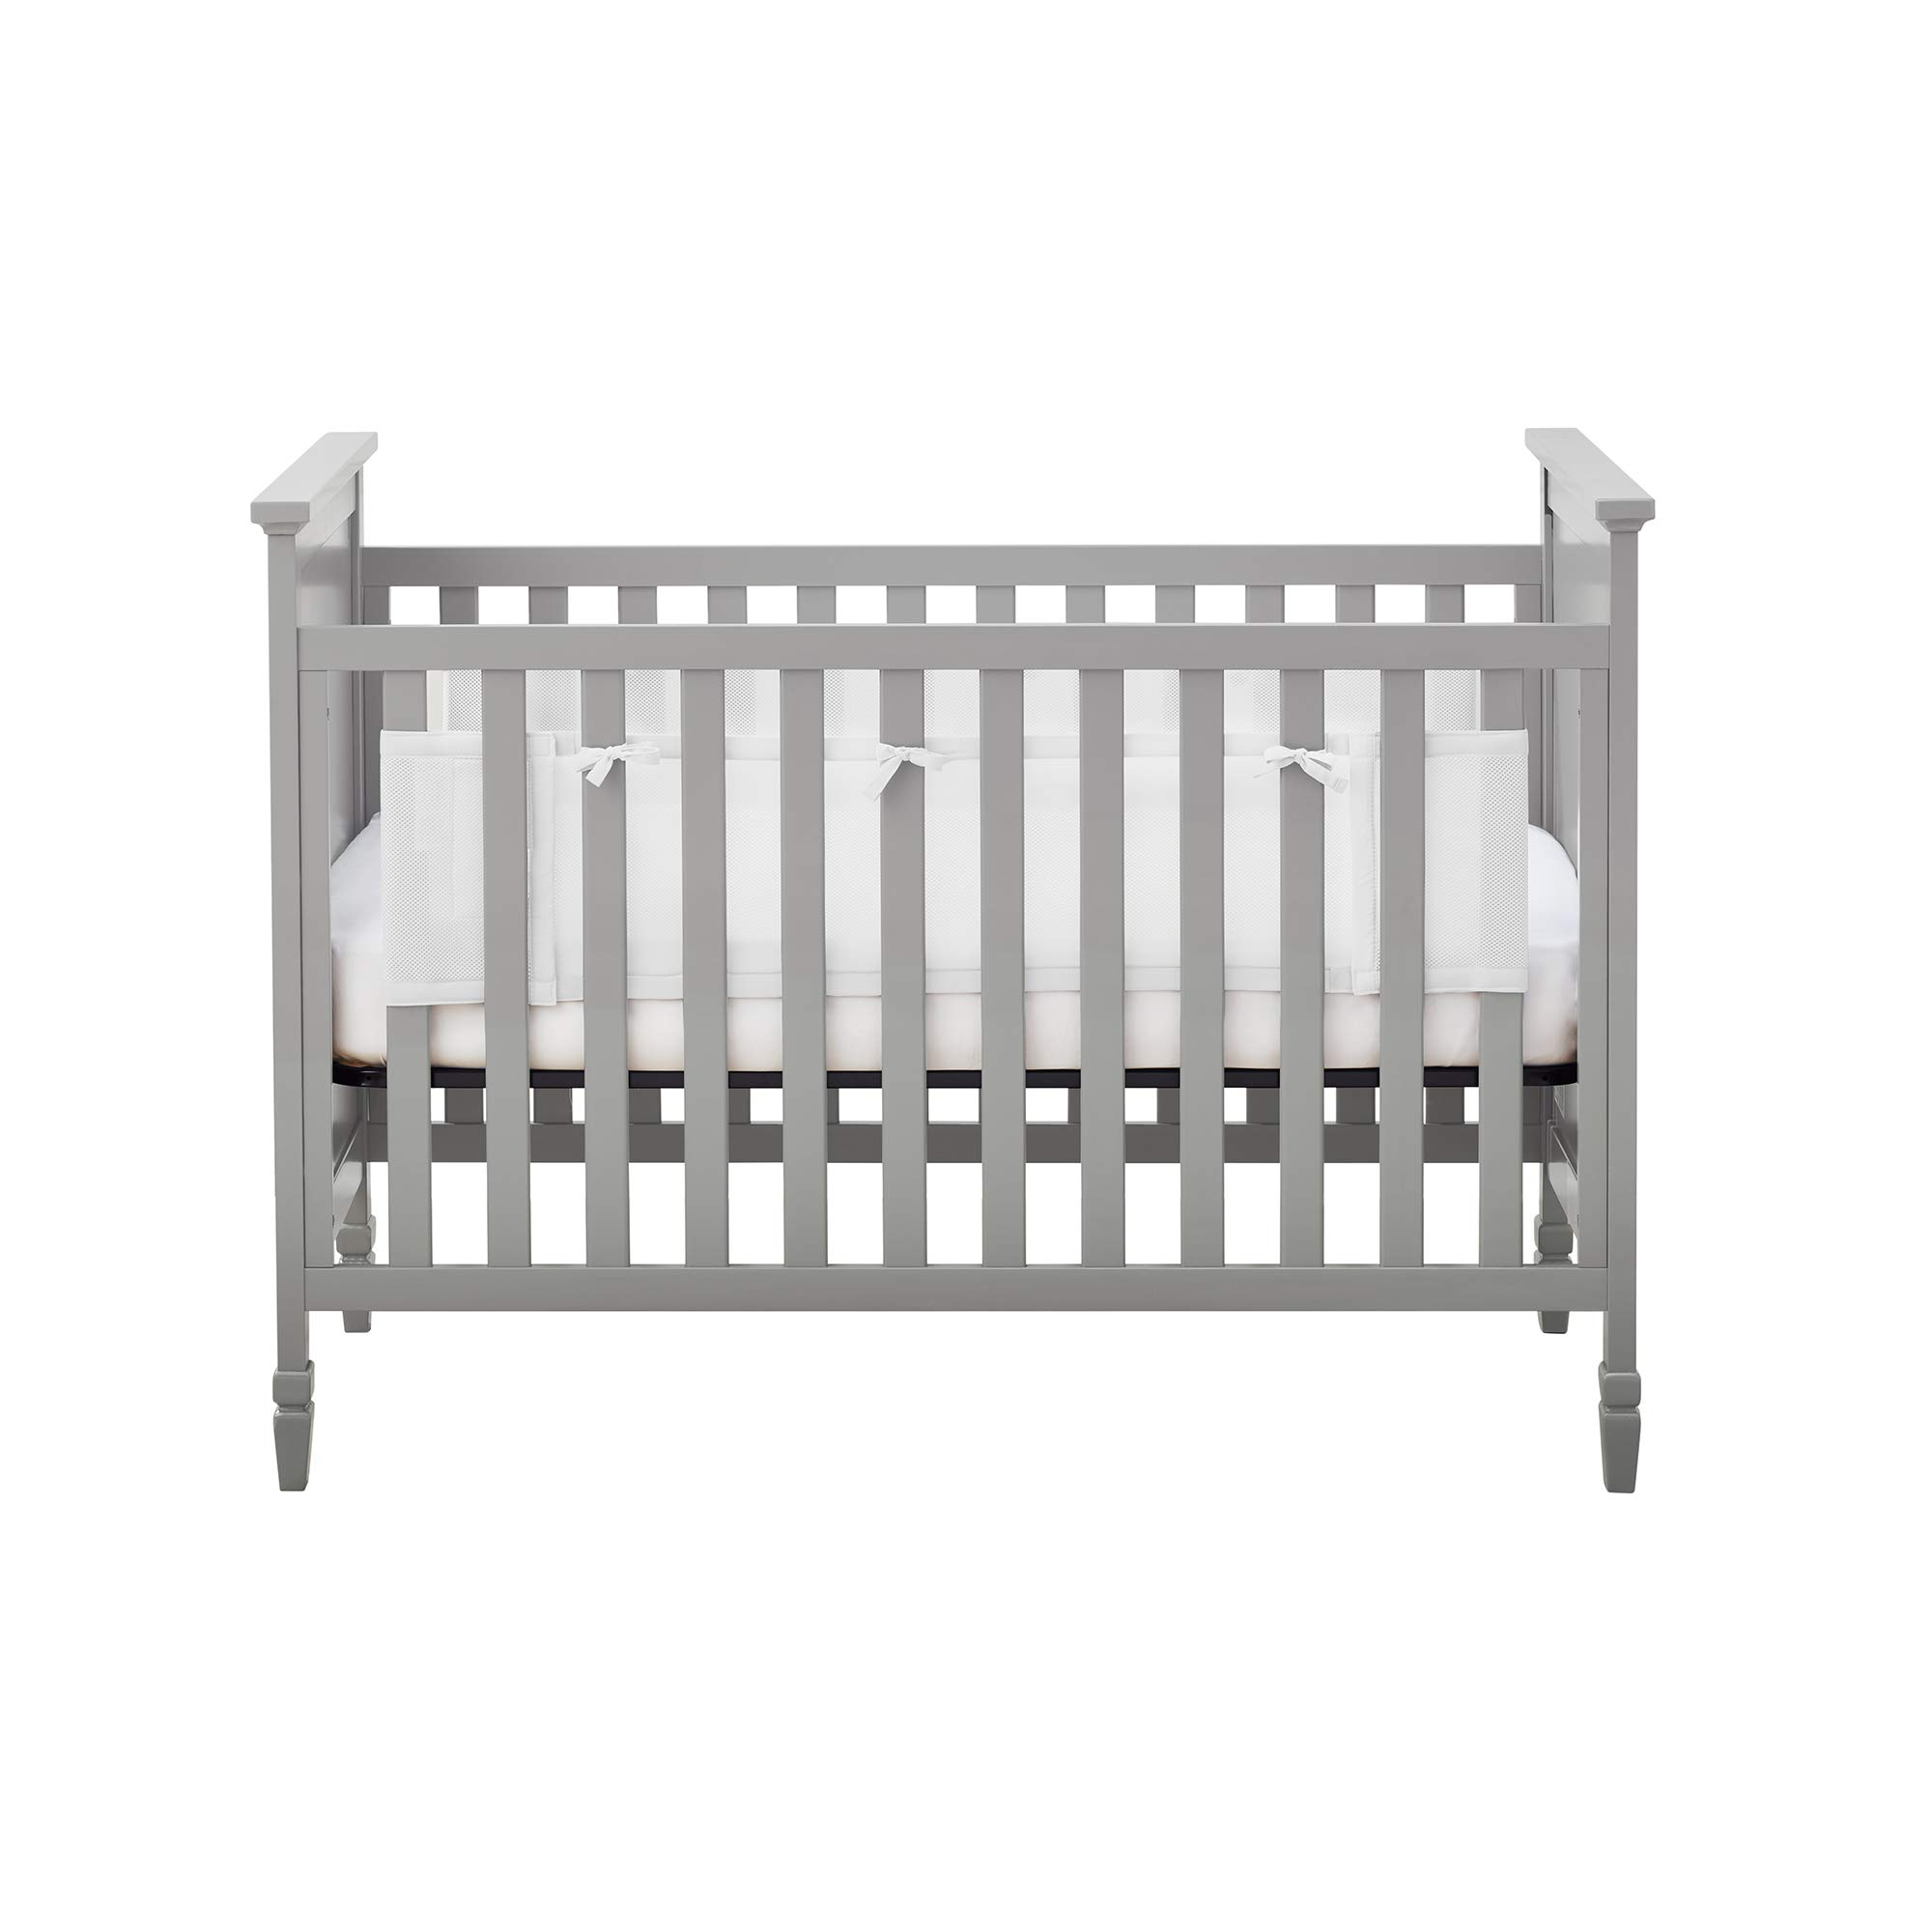 BreathableBaby Classic Breathable Mesh Liner for Solid End Cribs - White by BreathableBaby